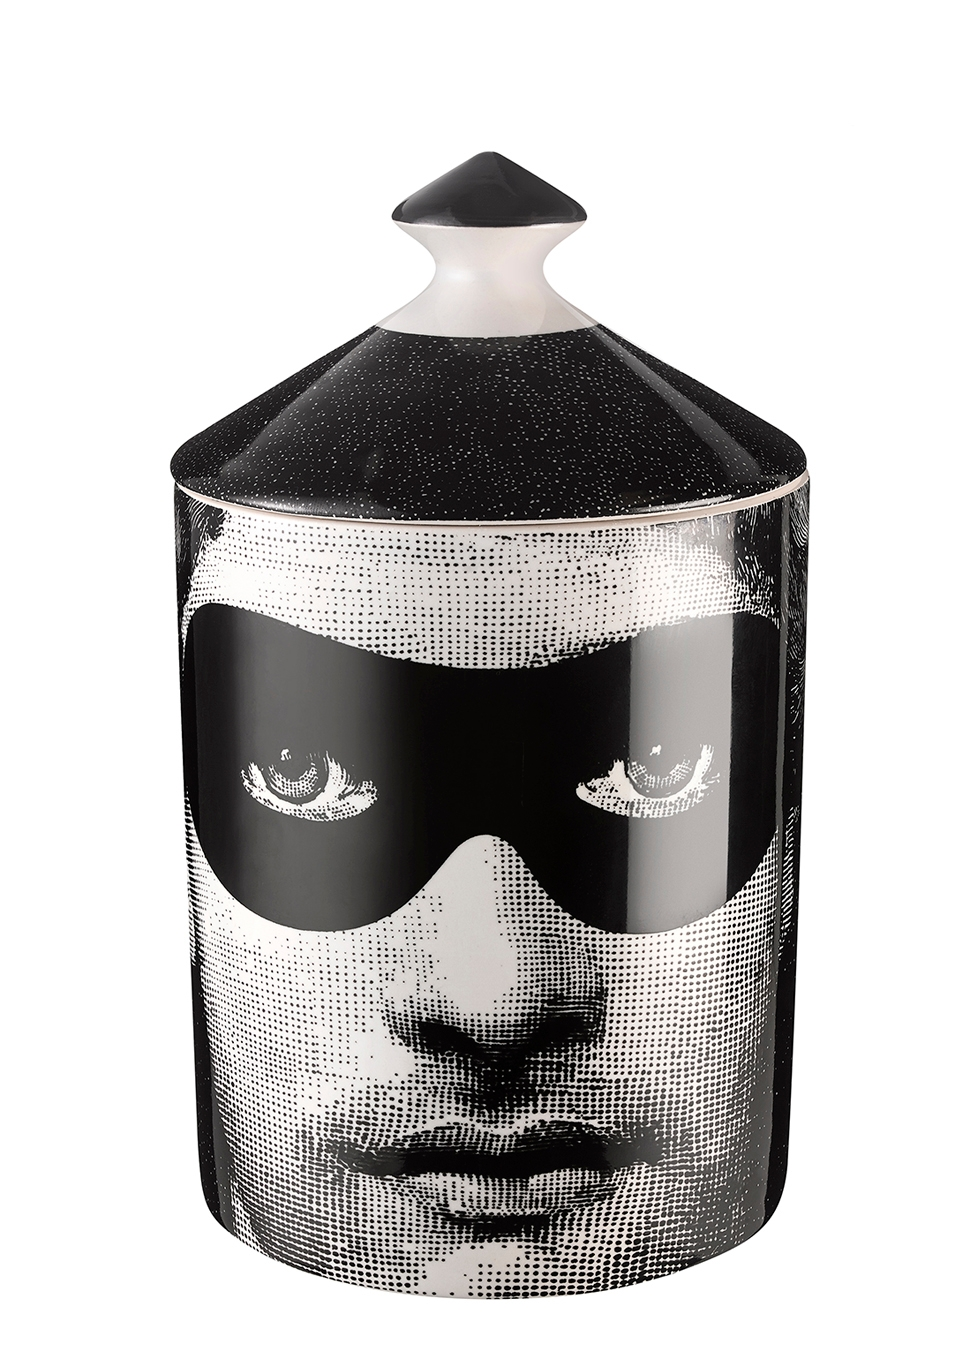 Don Giovanni Rose Patchouli Candle 300g - FORNASETTI